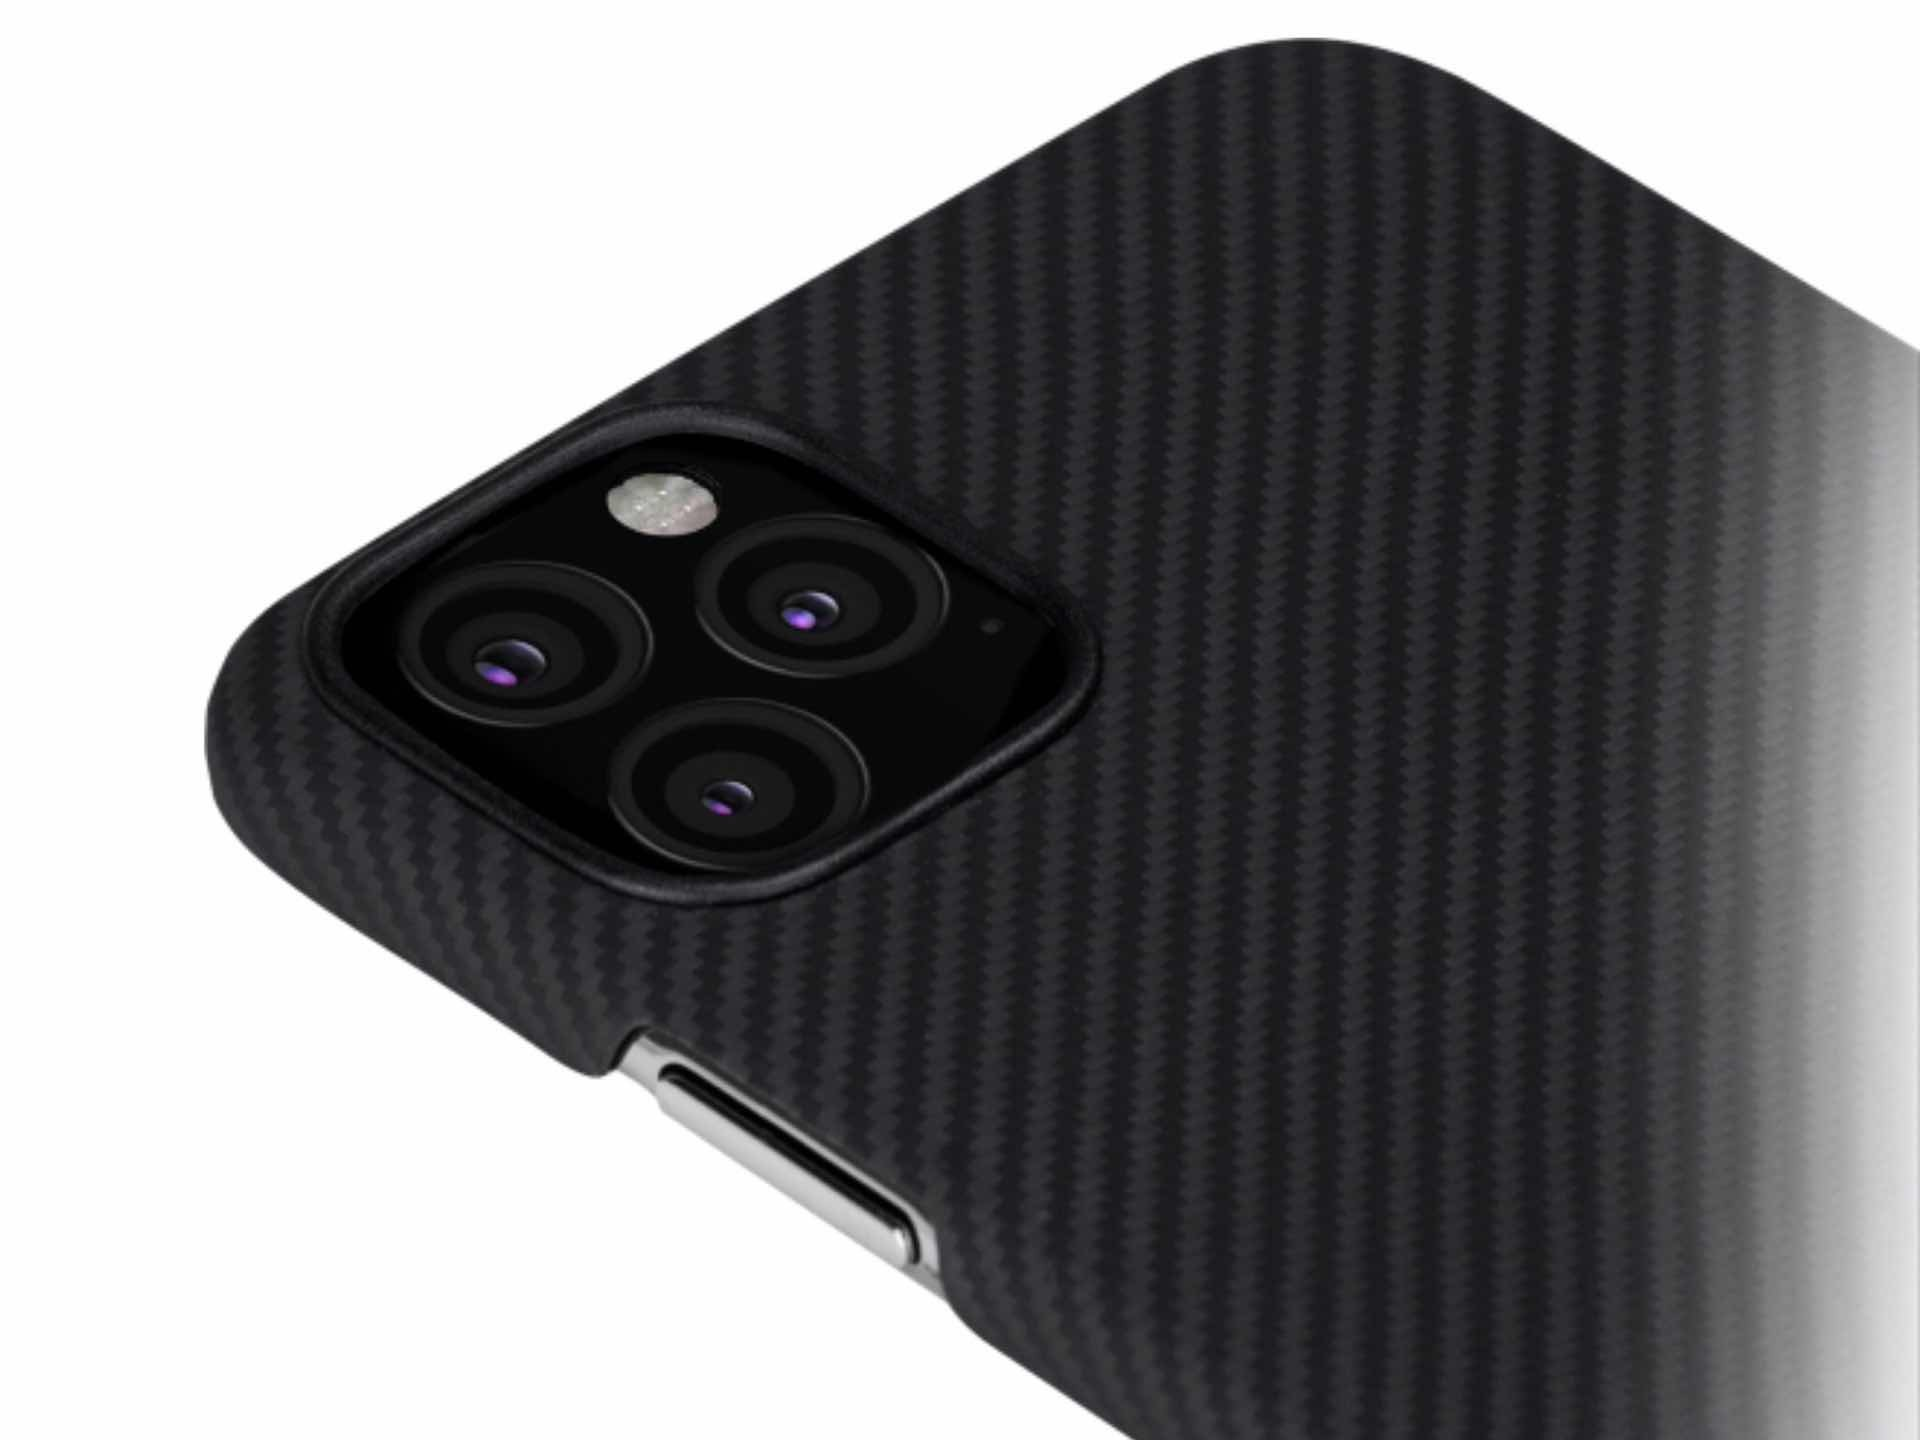 pitaka-air-case-for-iphone-11-pro-max-2